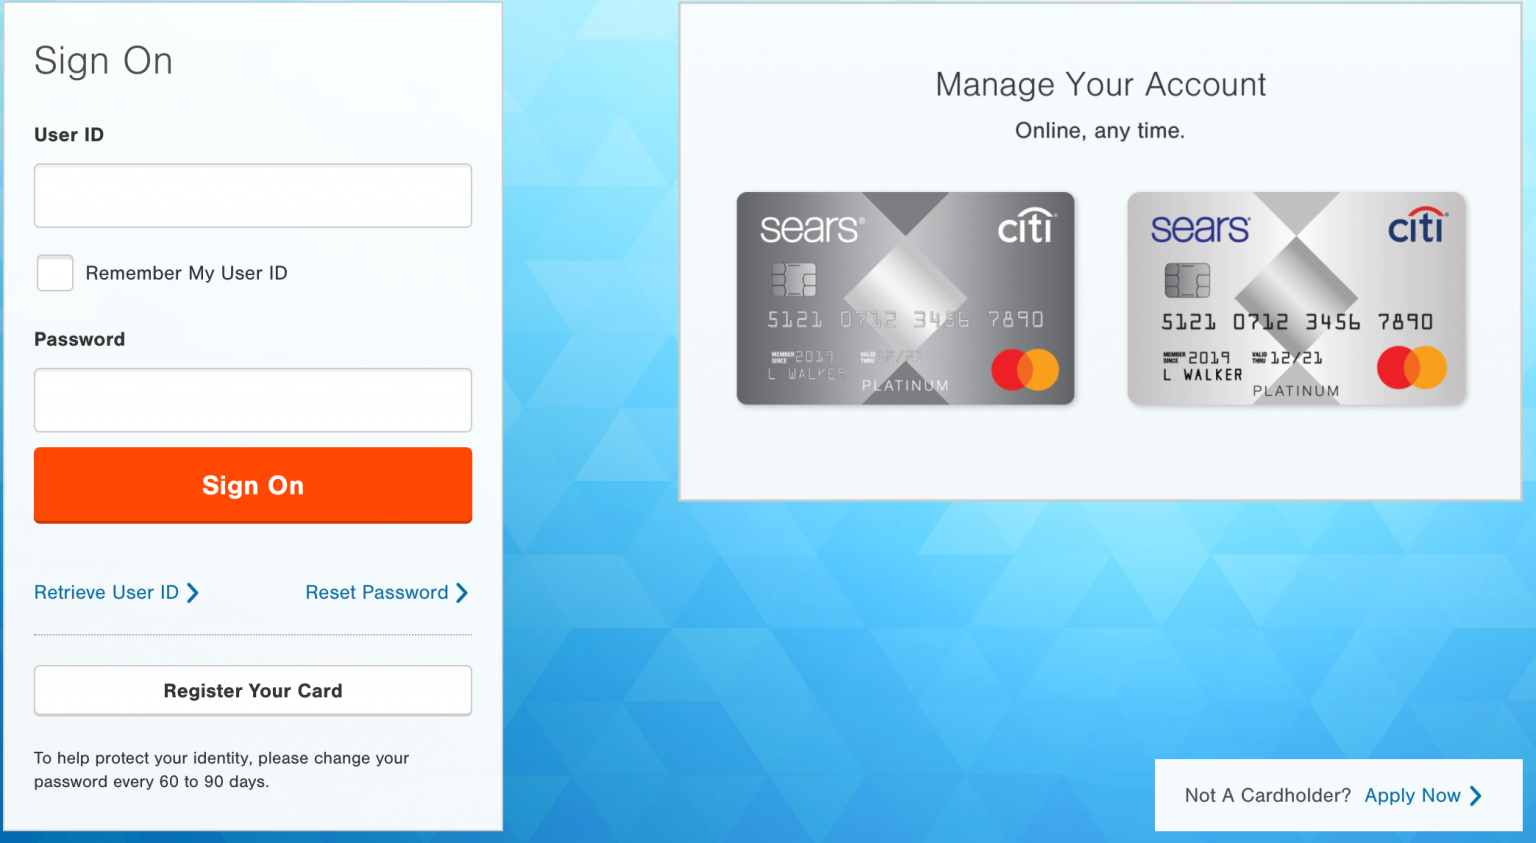 Sears Credit Card Login for Payment – Customer Service Phone